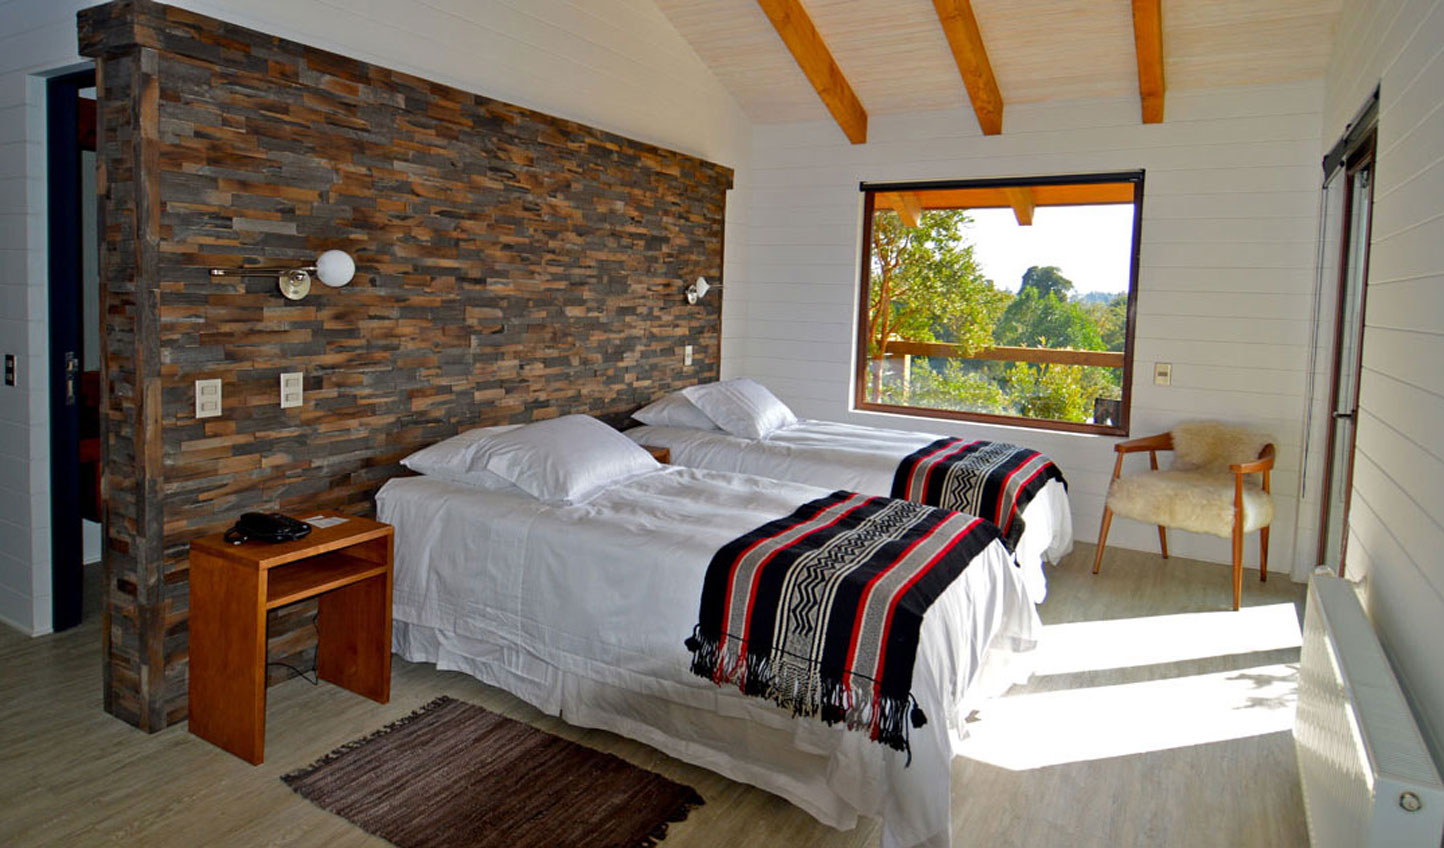 Traditional influences adorn the bedrooms